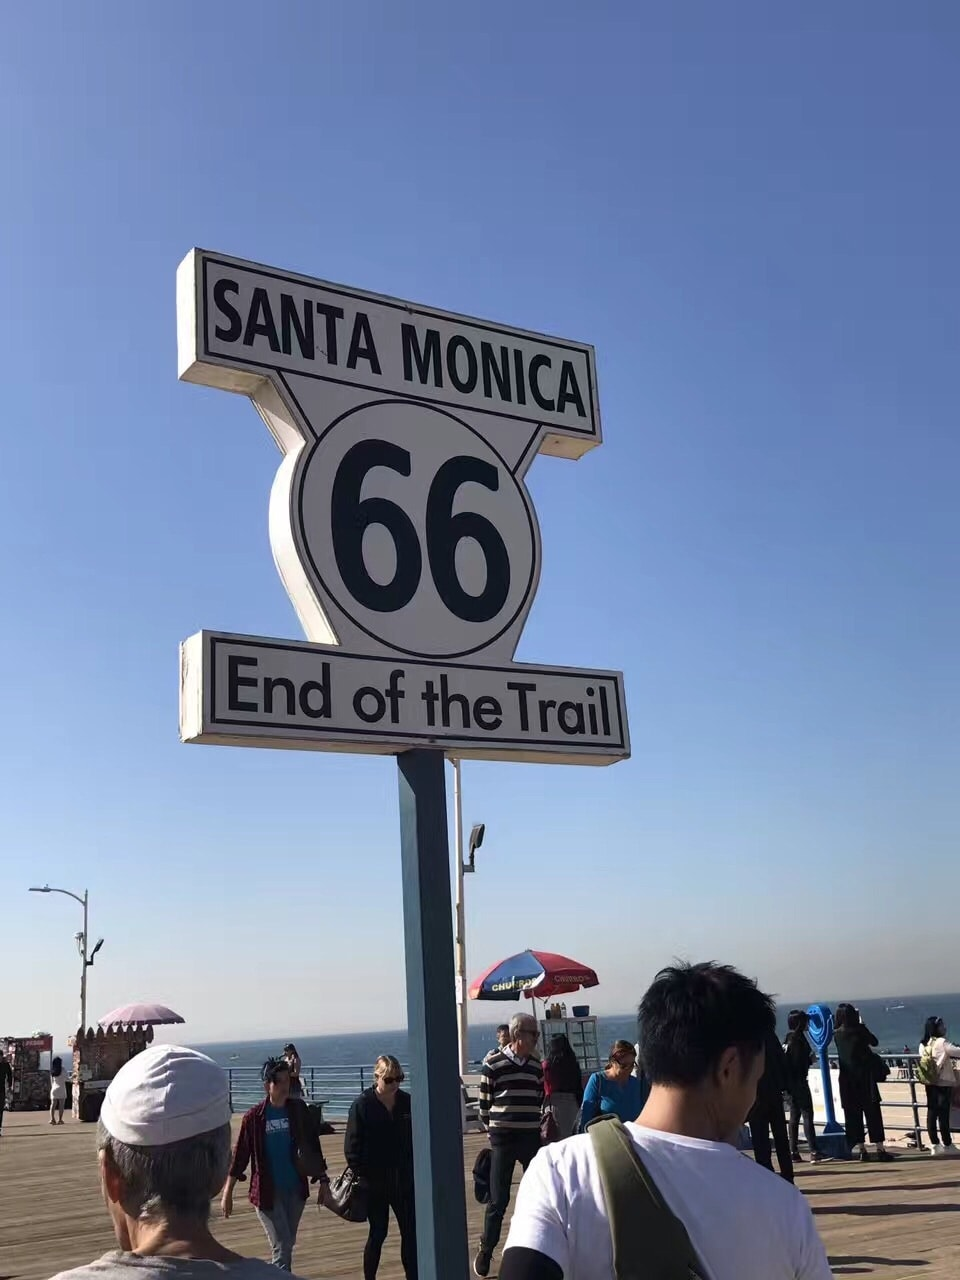 Santa Monica Beach | Tickets, Deals, Reviews, Family